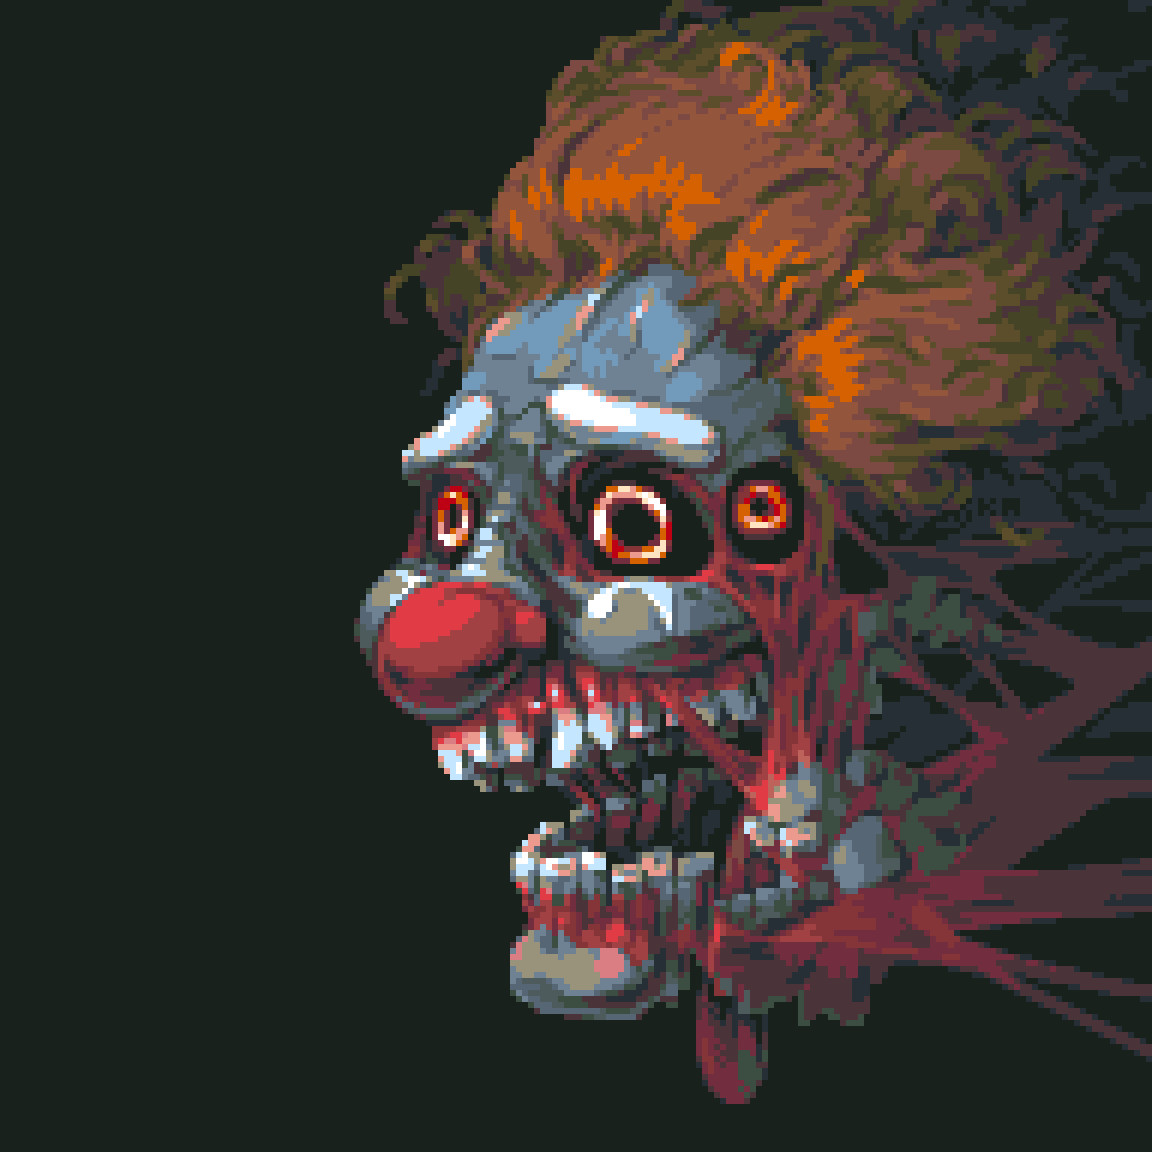 Pixel Art par Valerii Kim : Clown